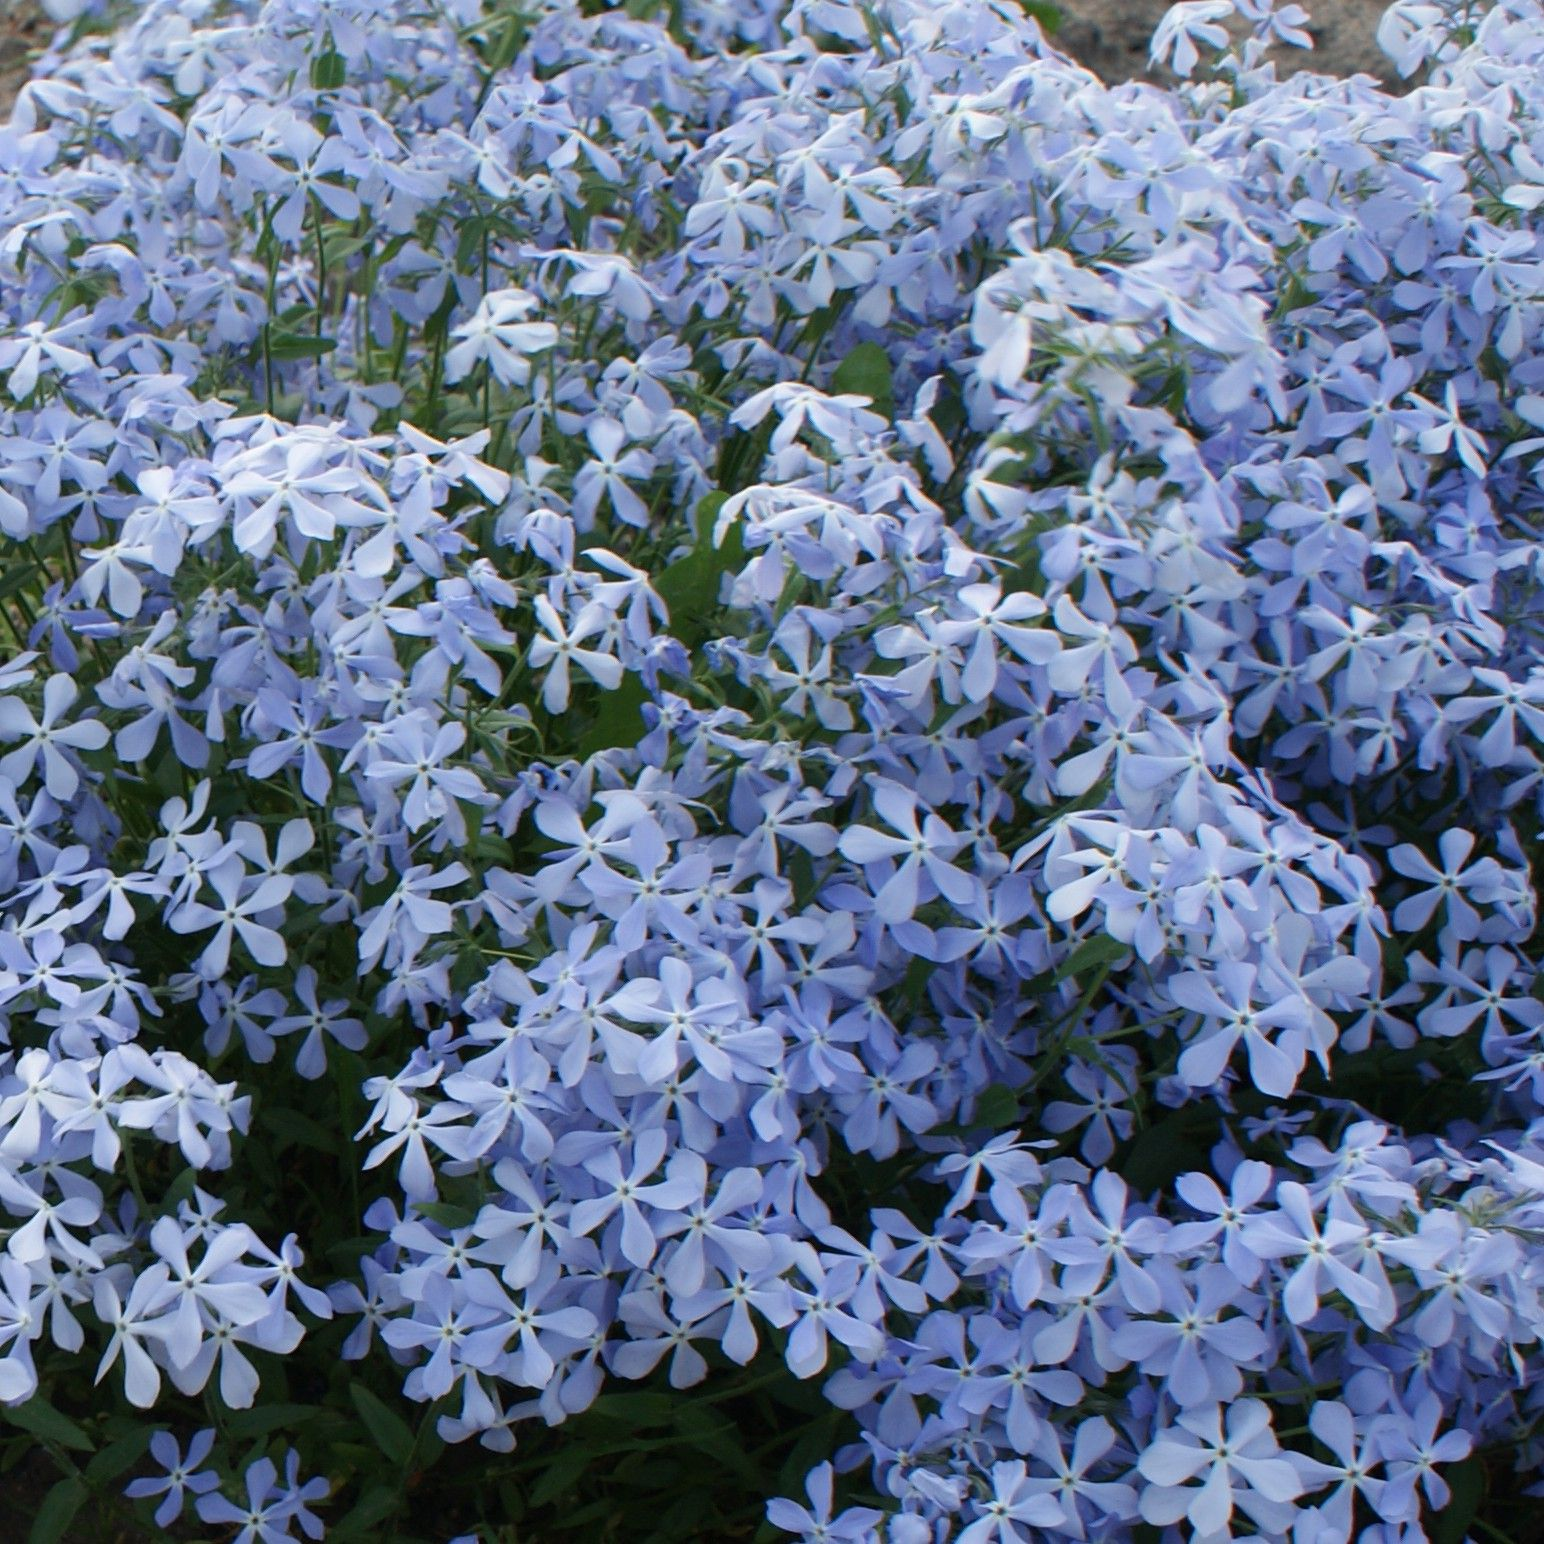 Phlox divaricata Clouds of Perfume - Phlox bleu